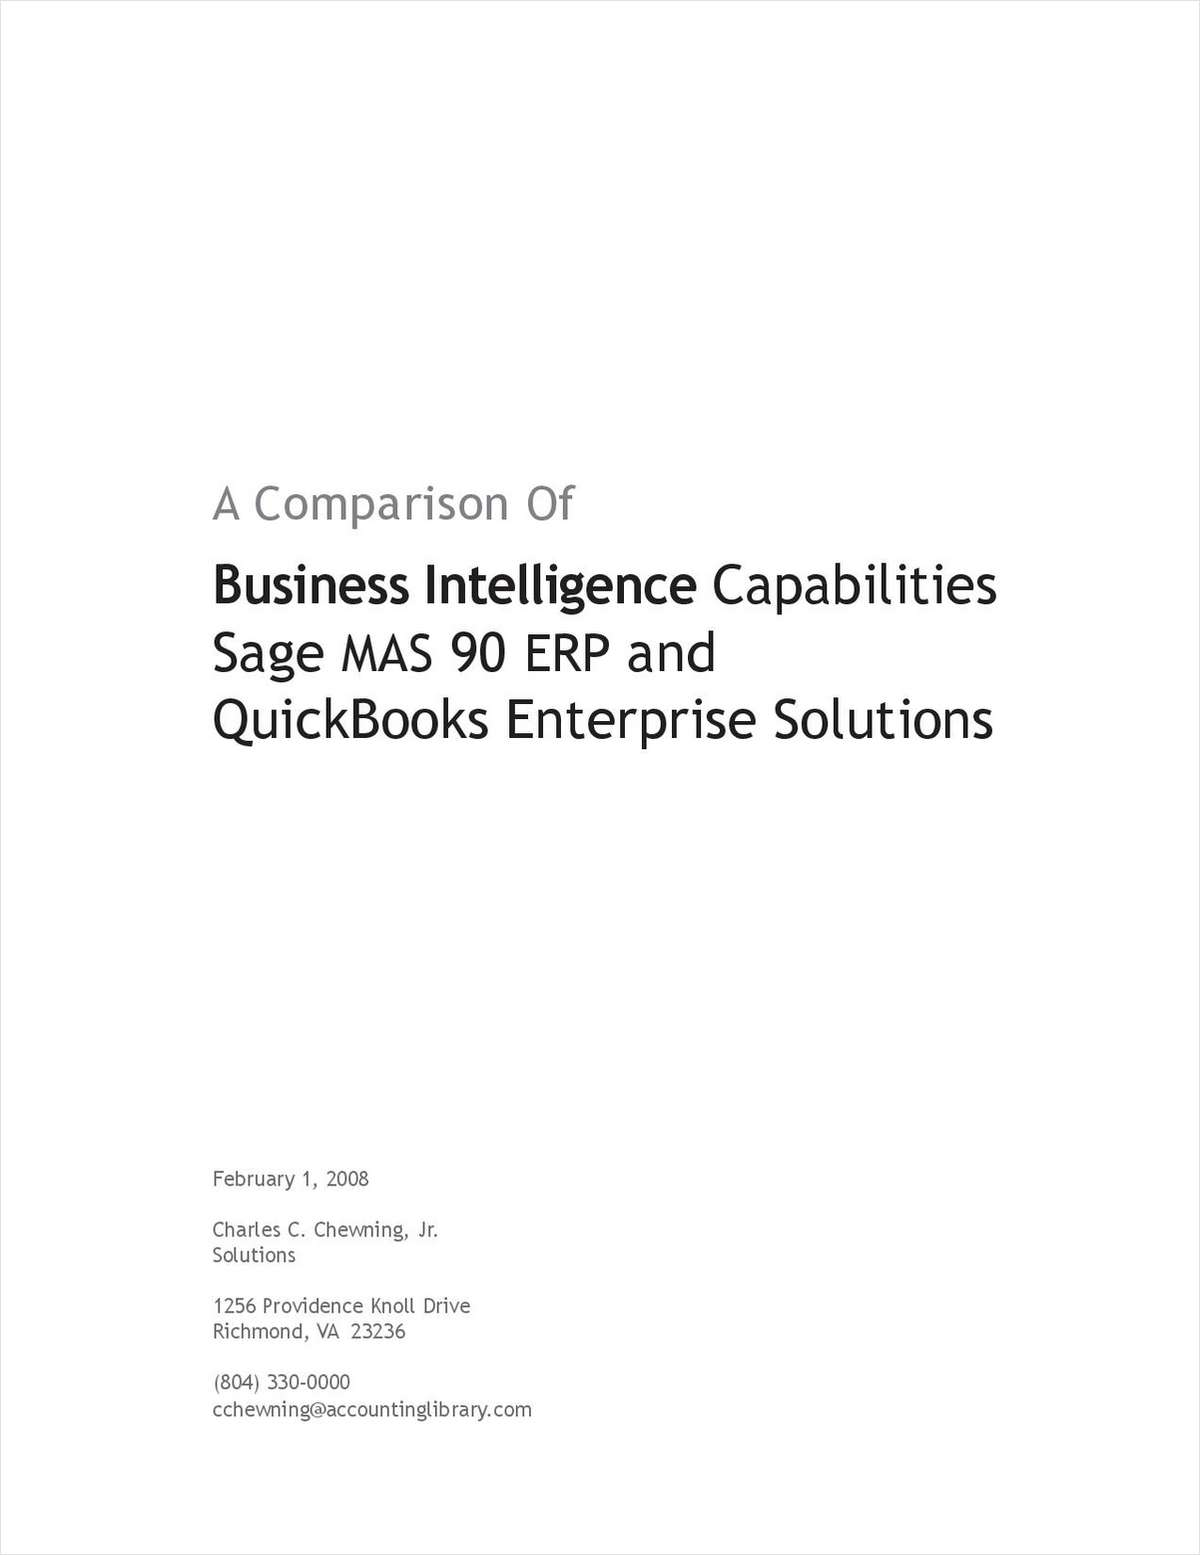 A Comparison of Business Intelligence Capabilities Sage MAS 90 ERP and QuickBooks Enterprise Solutions